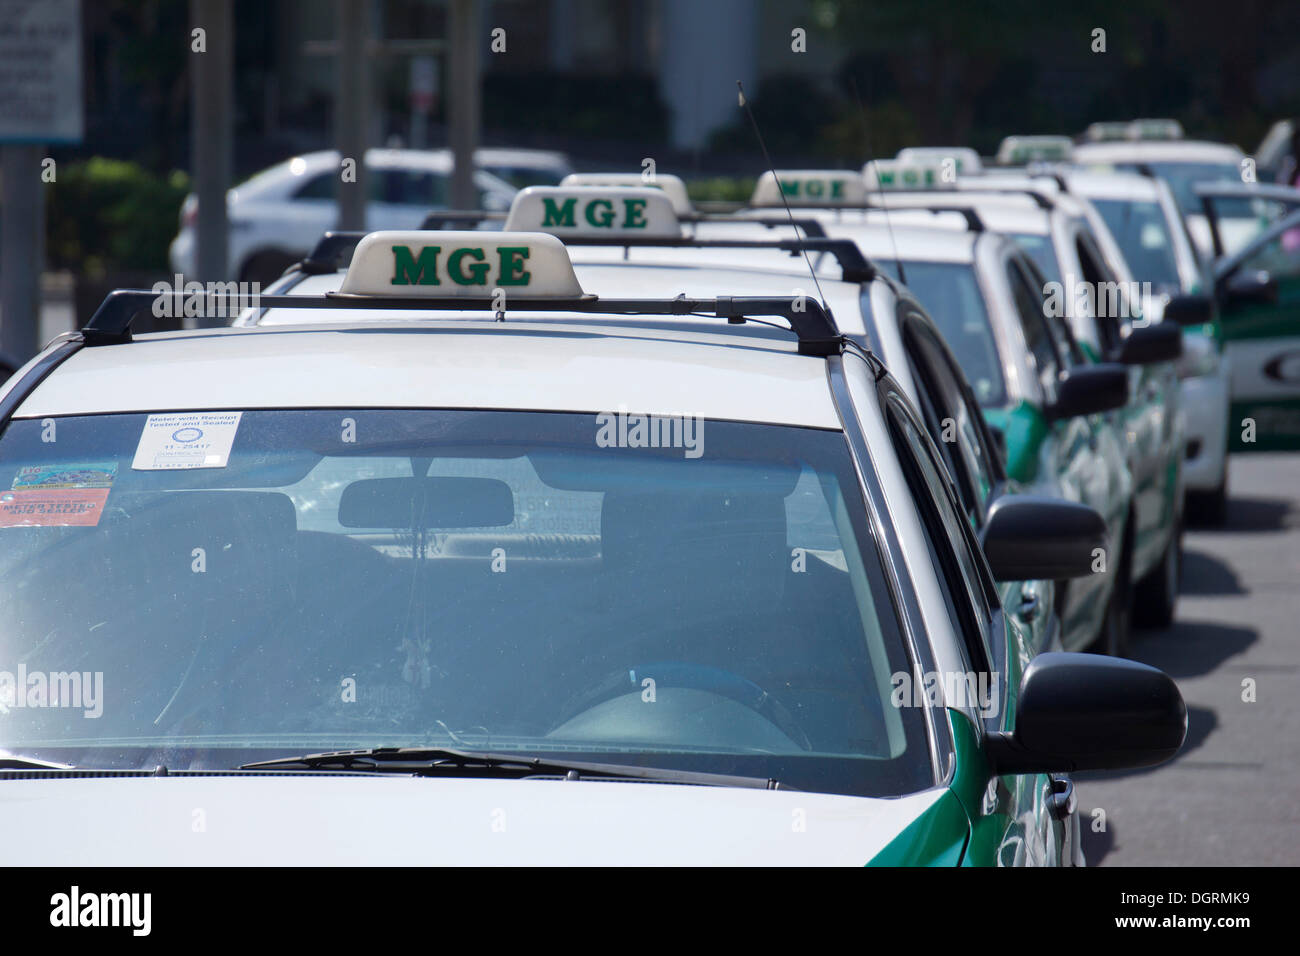 MGE Taxi Depot, Mall of Asia, Pasay City, Manila, Philippines, Asia, PublicGround - Stock Image